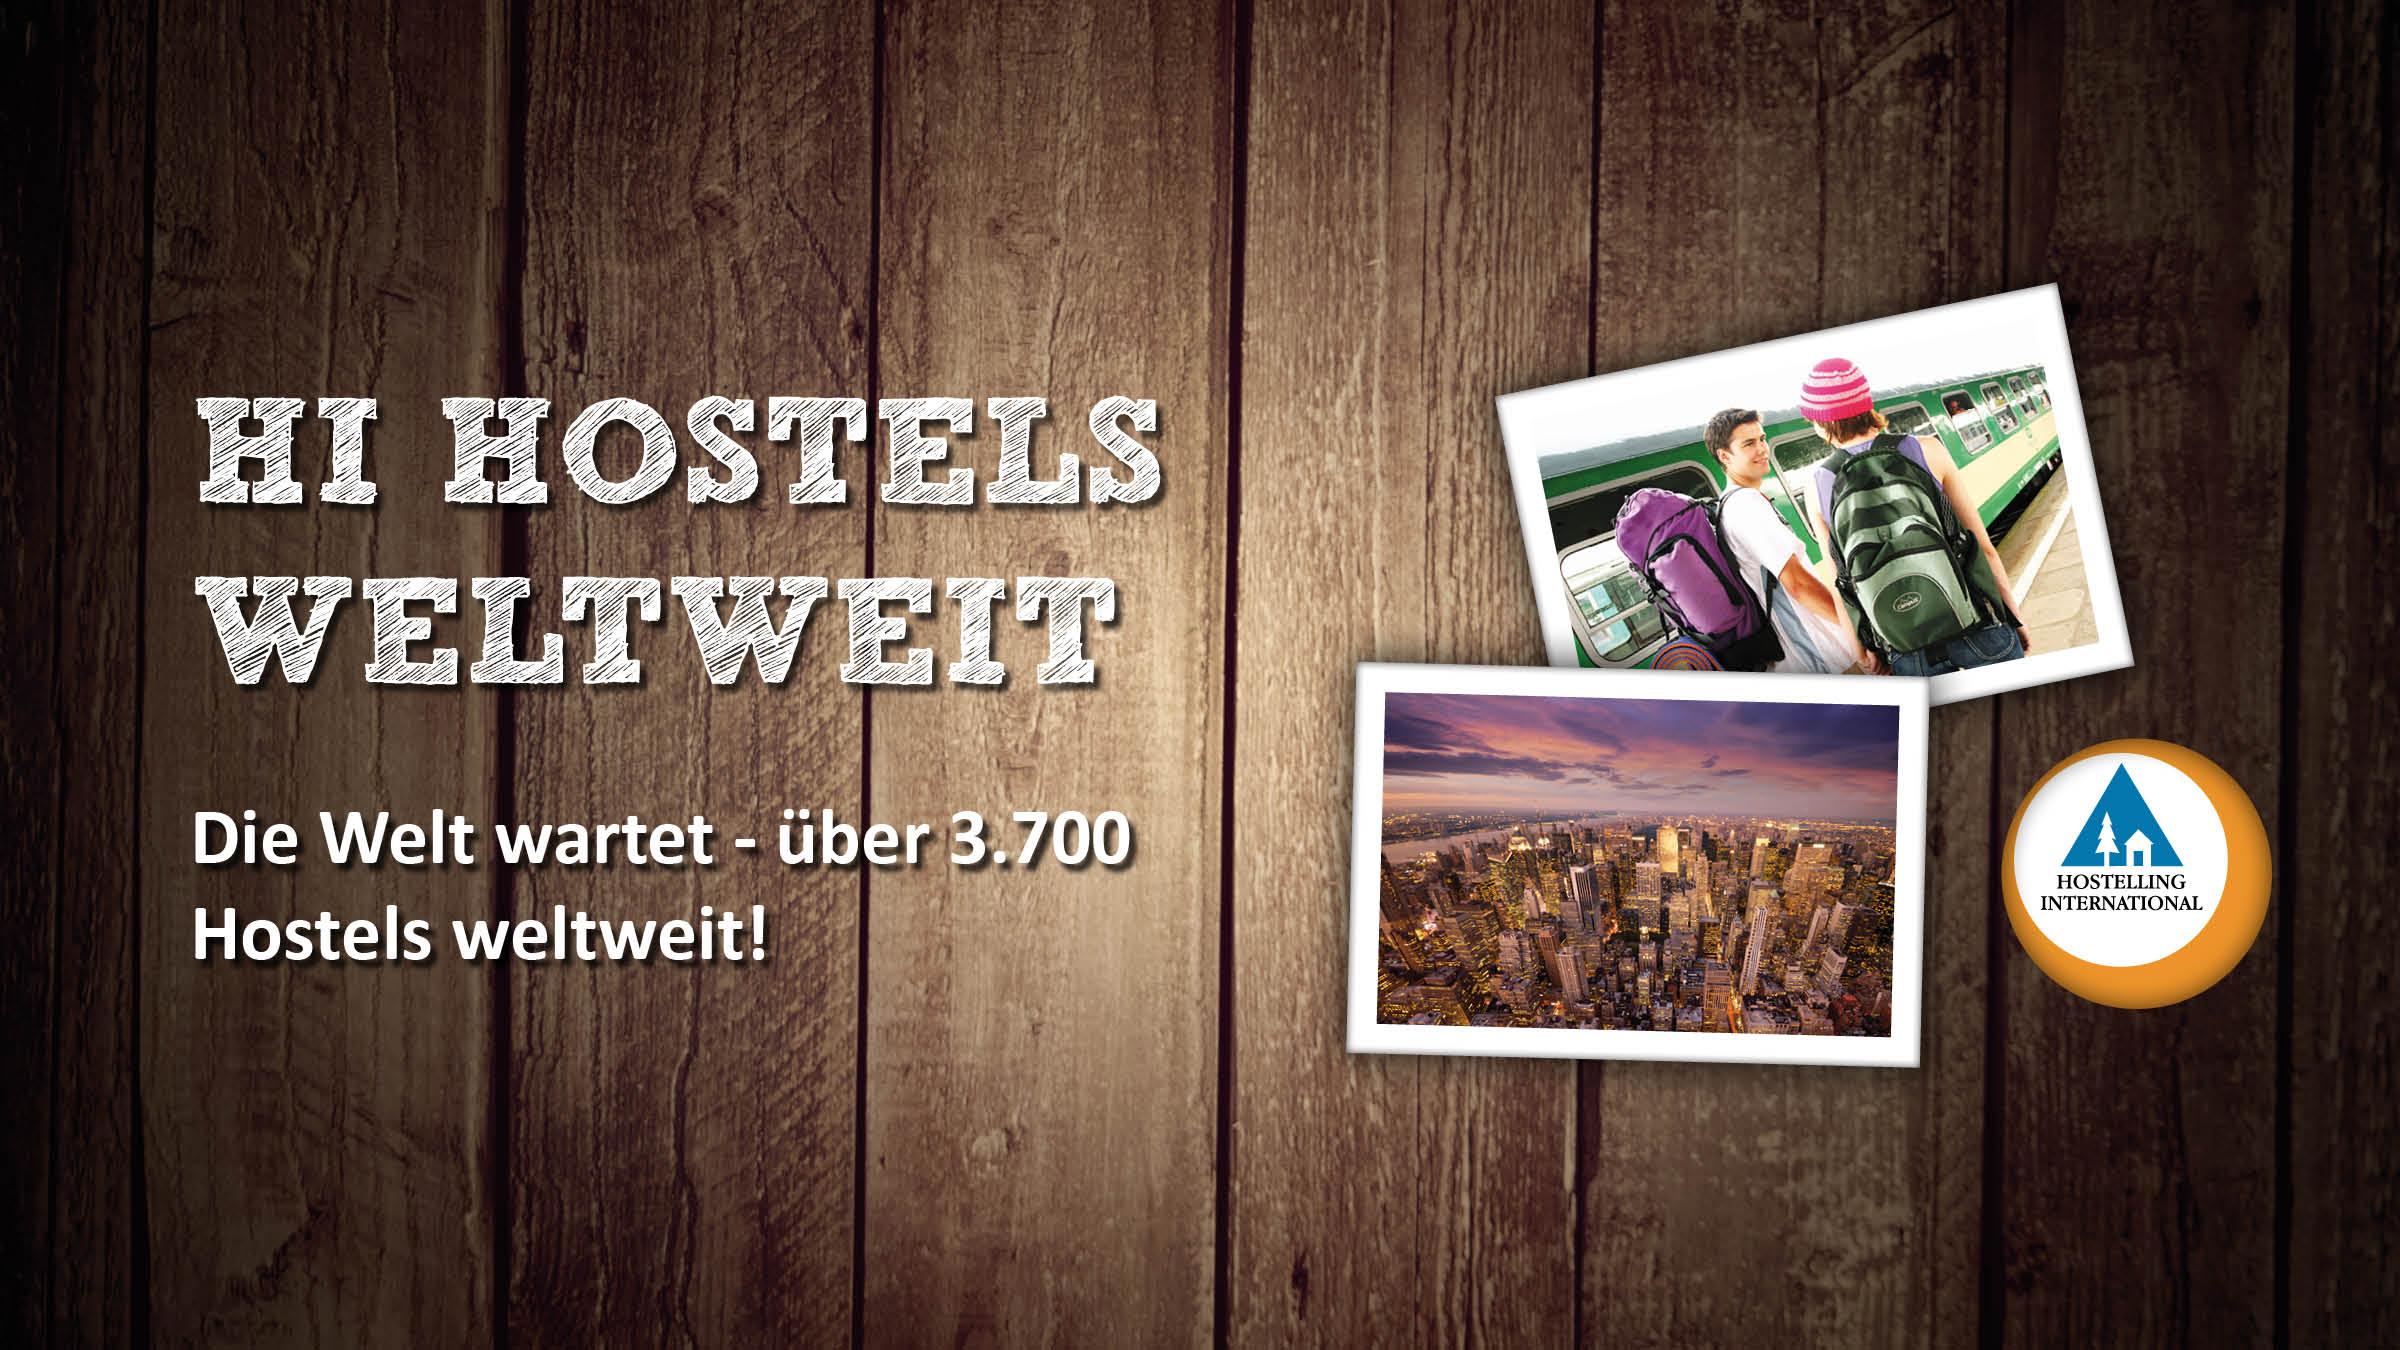 Hostelling International: Hostels weltweit